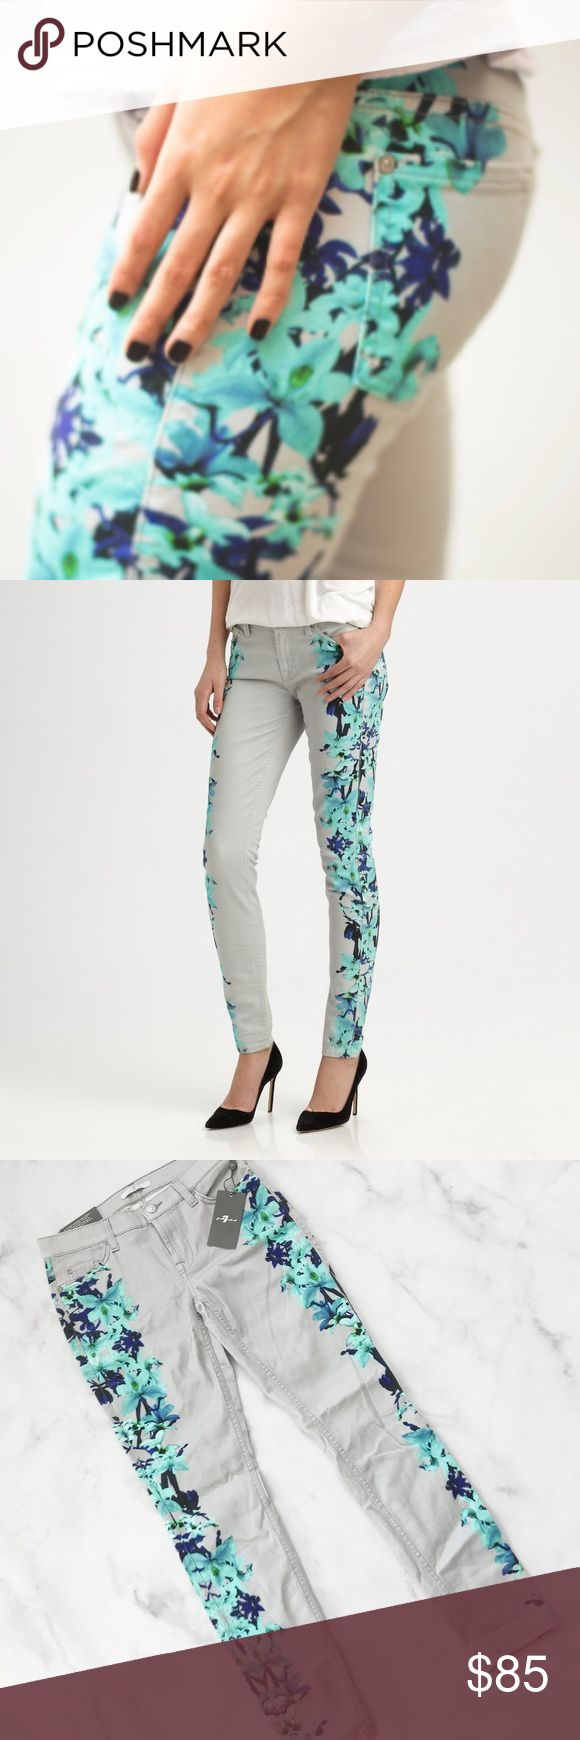 """7 For All Mankind The Skinny in Placement Floral Beautiful floral print skinny jeans from 7 For All Mankind. Light grey with bright blue flowers. Size 29. Brand new with tags! ----------- A pair of stretch-denim skinny jeans in a trendy placement-floral print comes complete with clean, minimal details and signature patches at the back pocket and waistband. Approx. inseam: 30"""" with 10"""" leg opening. Approx. rise: front 8 1/4""""; back 13"""". 7 for all Mankind Jeans Skinny"""